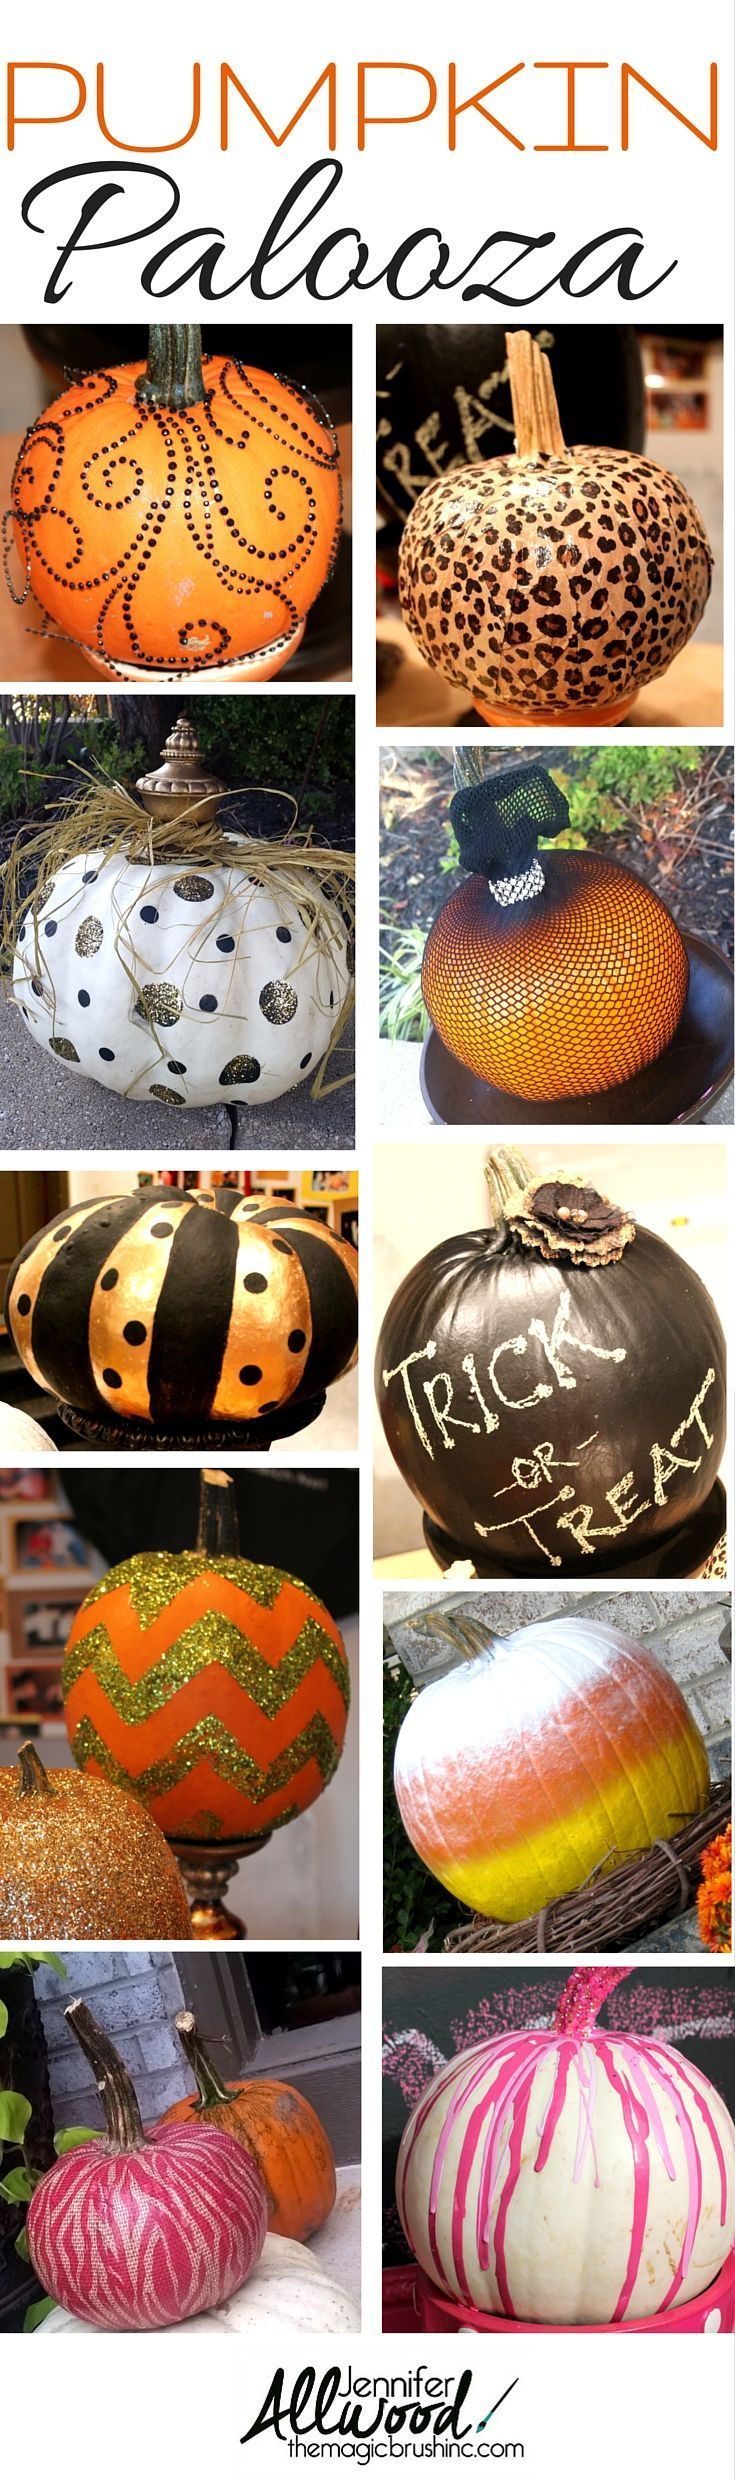 Tons of pumpkin decorating ideas from theMagicBrushinc.com  Decoupage, glitter, chalk, chevron, pink, spray paint, fishnet pumpkins and more! #fall #falldecor #homedecor #diy #diyhomedecor #pumpkin #pumpkineverything #howto #decorating #decoratingideas